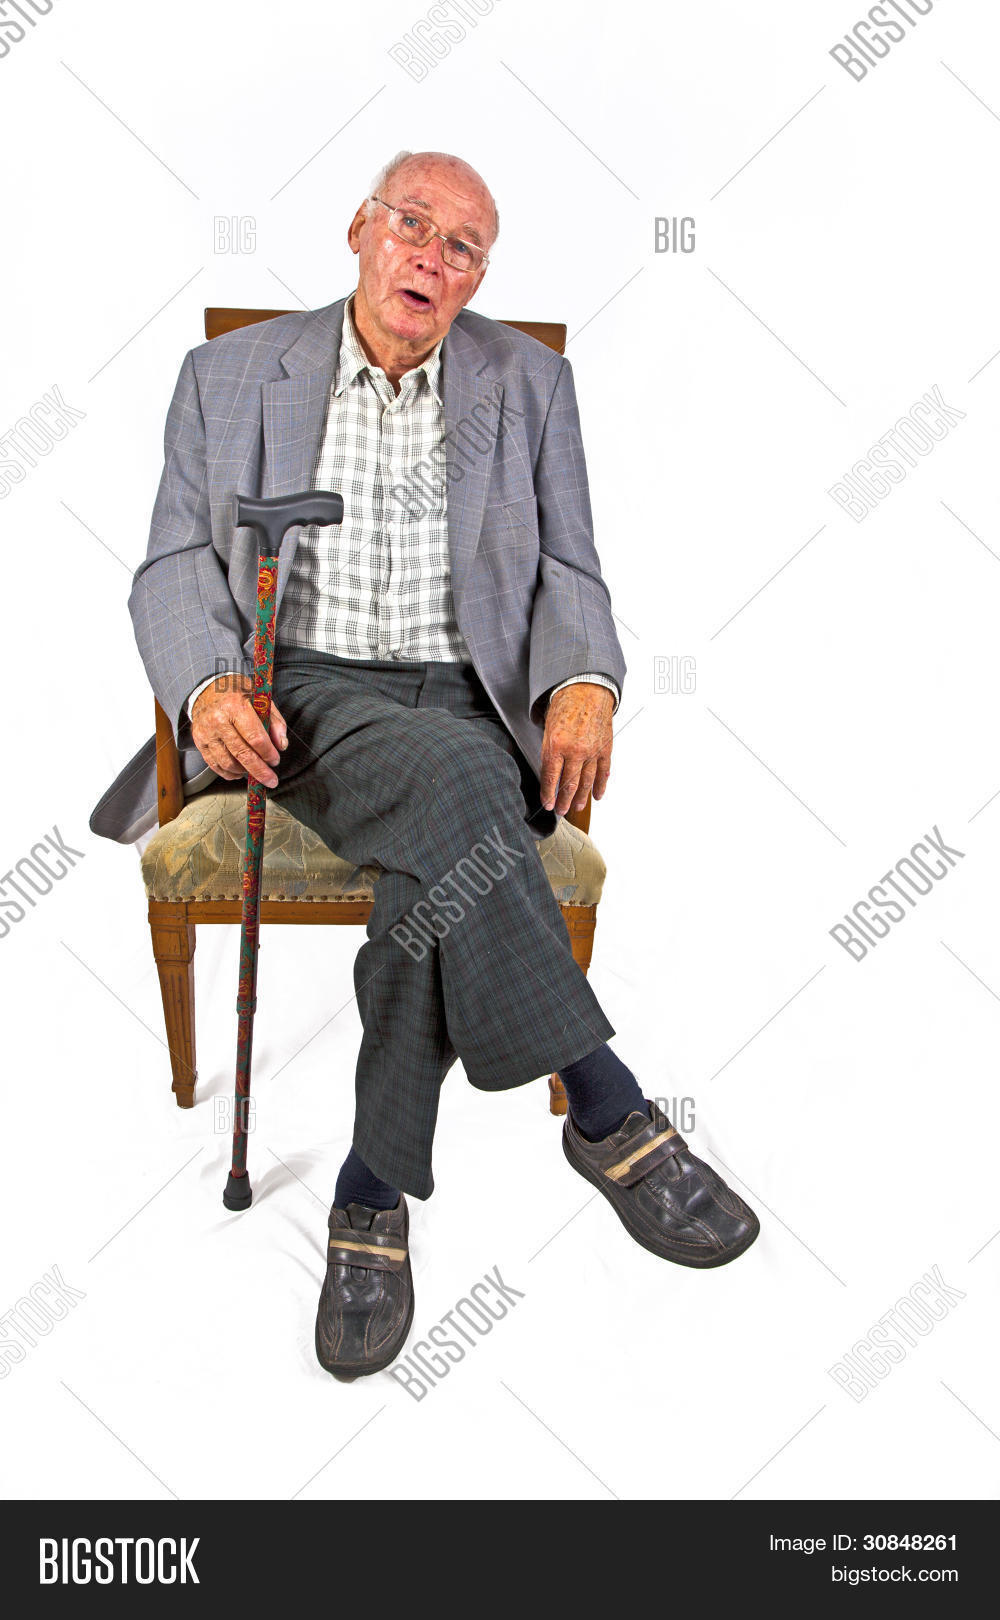 adult,aged,aging,alone,care,casual,caucasian,chair,elderly,eyes,face,fun,glasses,grey,happy,health,healthcare,help,home,image,indoor,islolated,isolated,jacket,lifestyle,living,male,man,old,older,old man,one,pensioner,people,person,portrait,relax,relaxed,retirement,room,senior,serious,single,sitting,smart,smiling,space,stick,studio,walking,wisdom,year